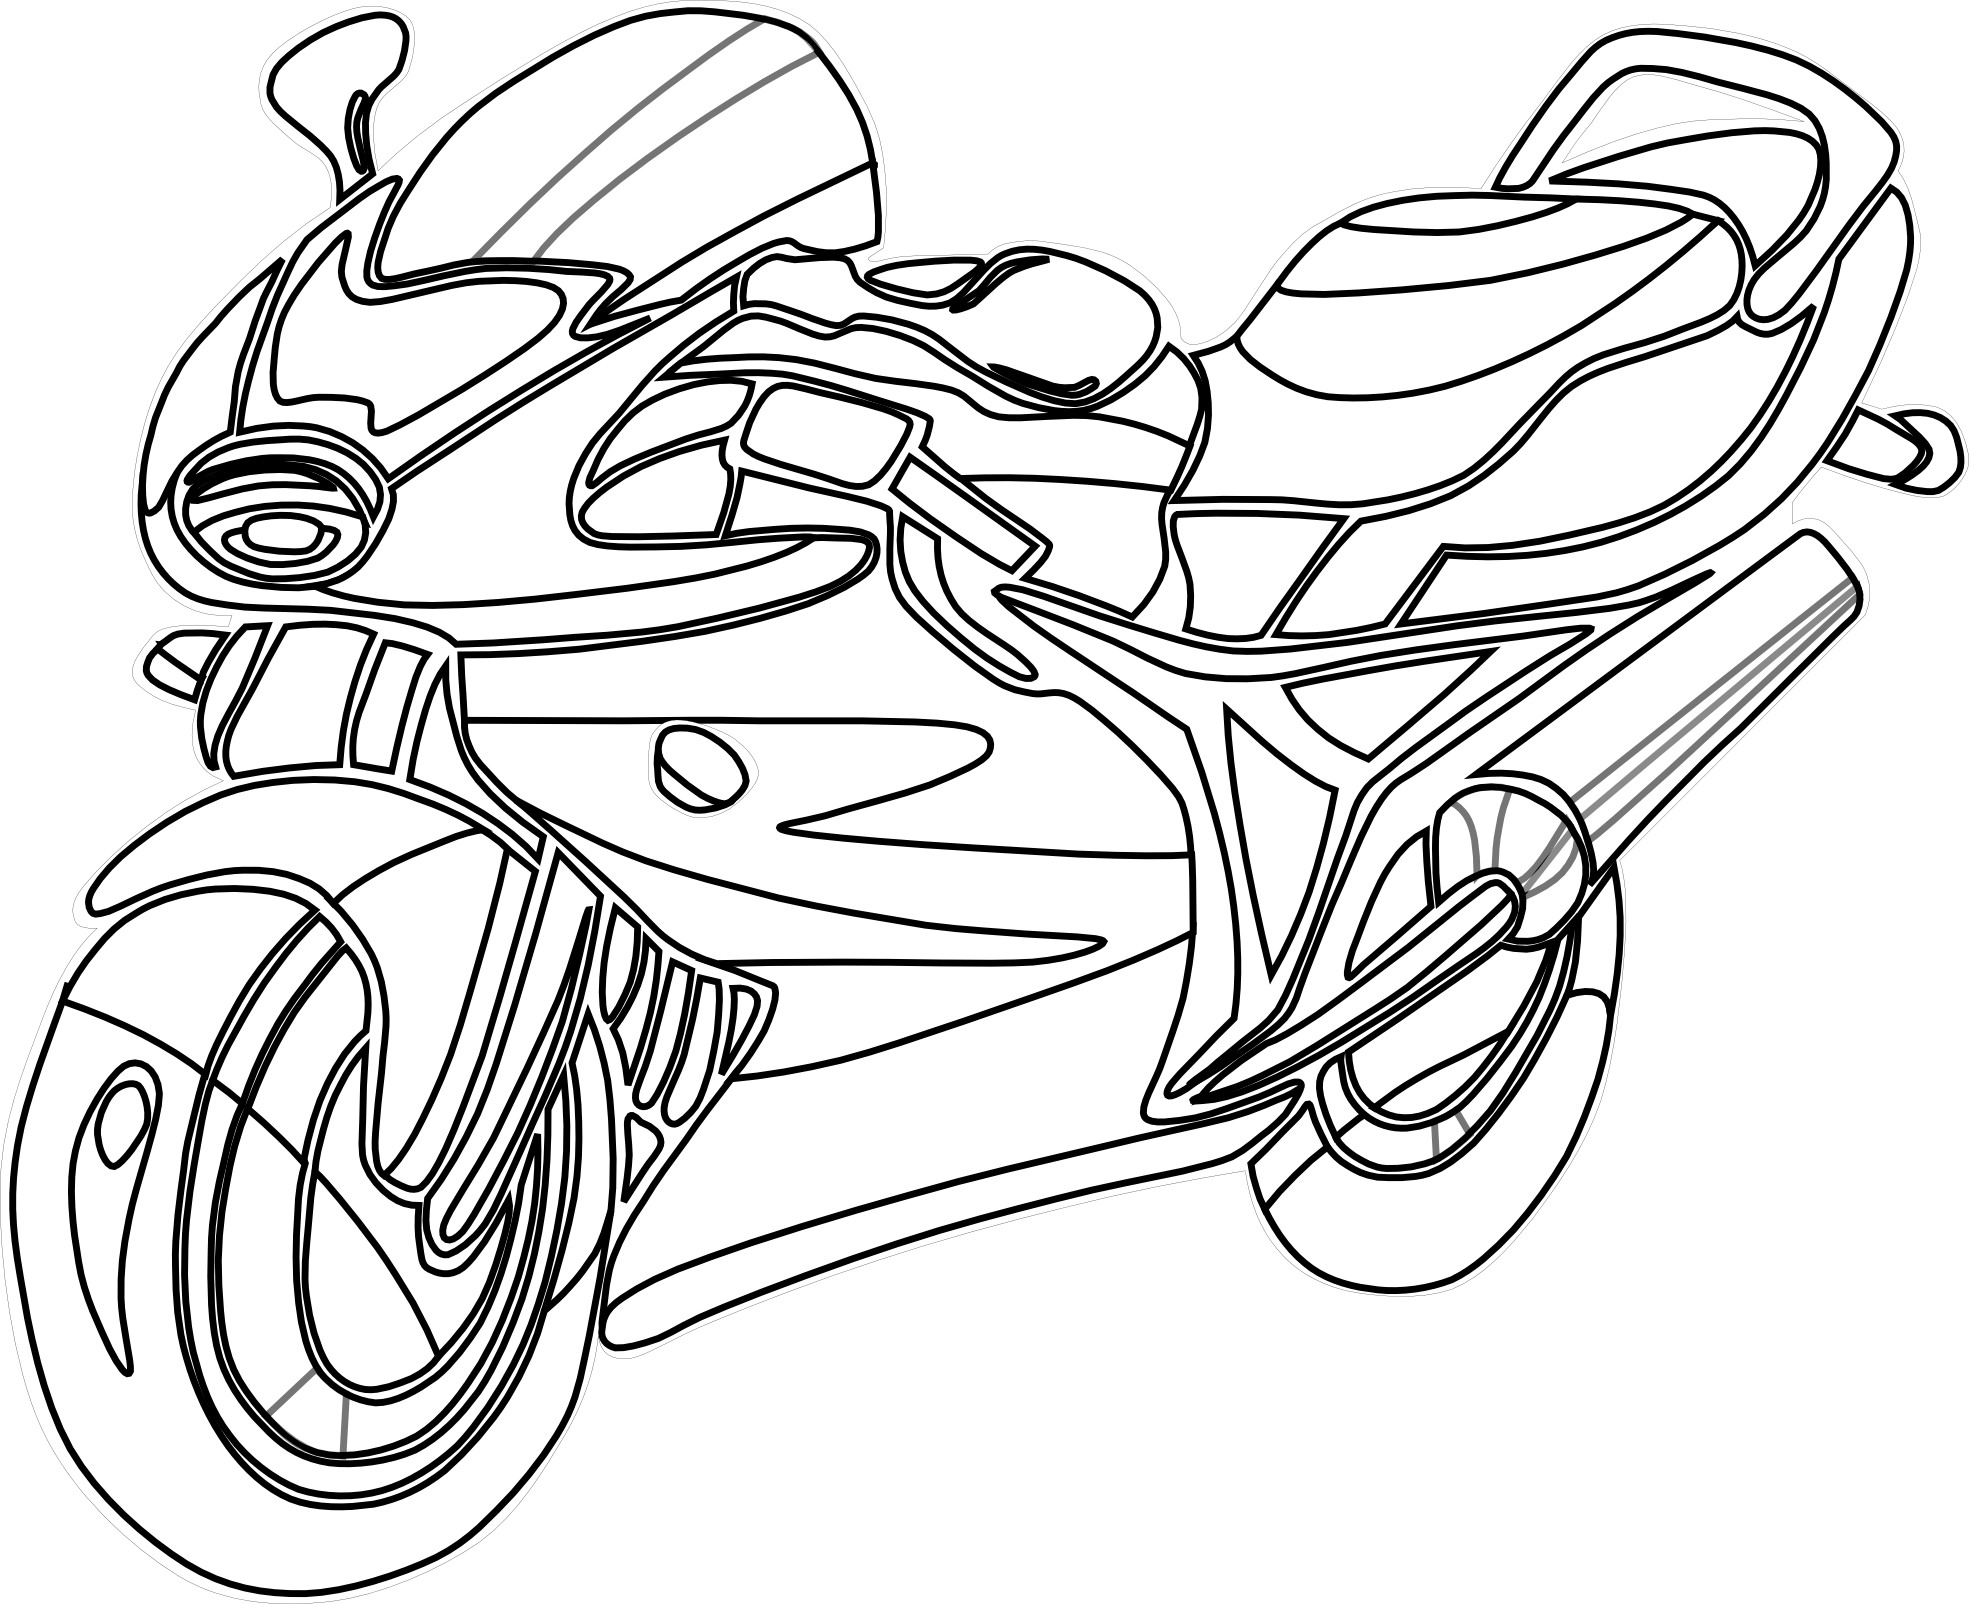 coloring pictures of motorcycles motor bike coloring pages coloring home pictures motorcycles coloring of